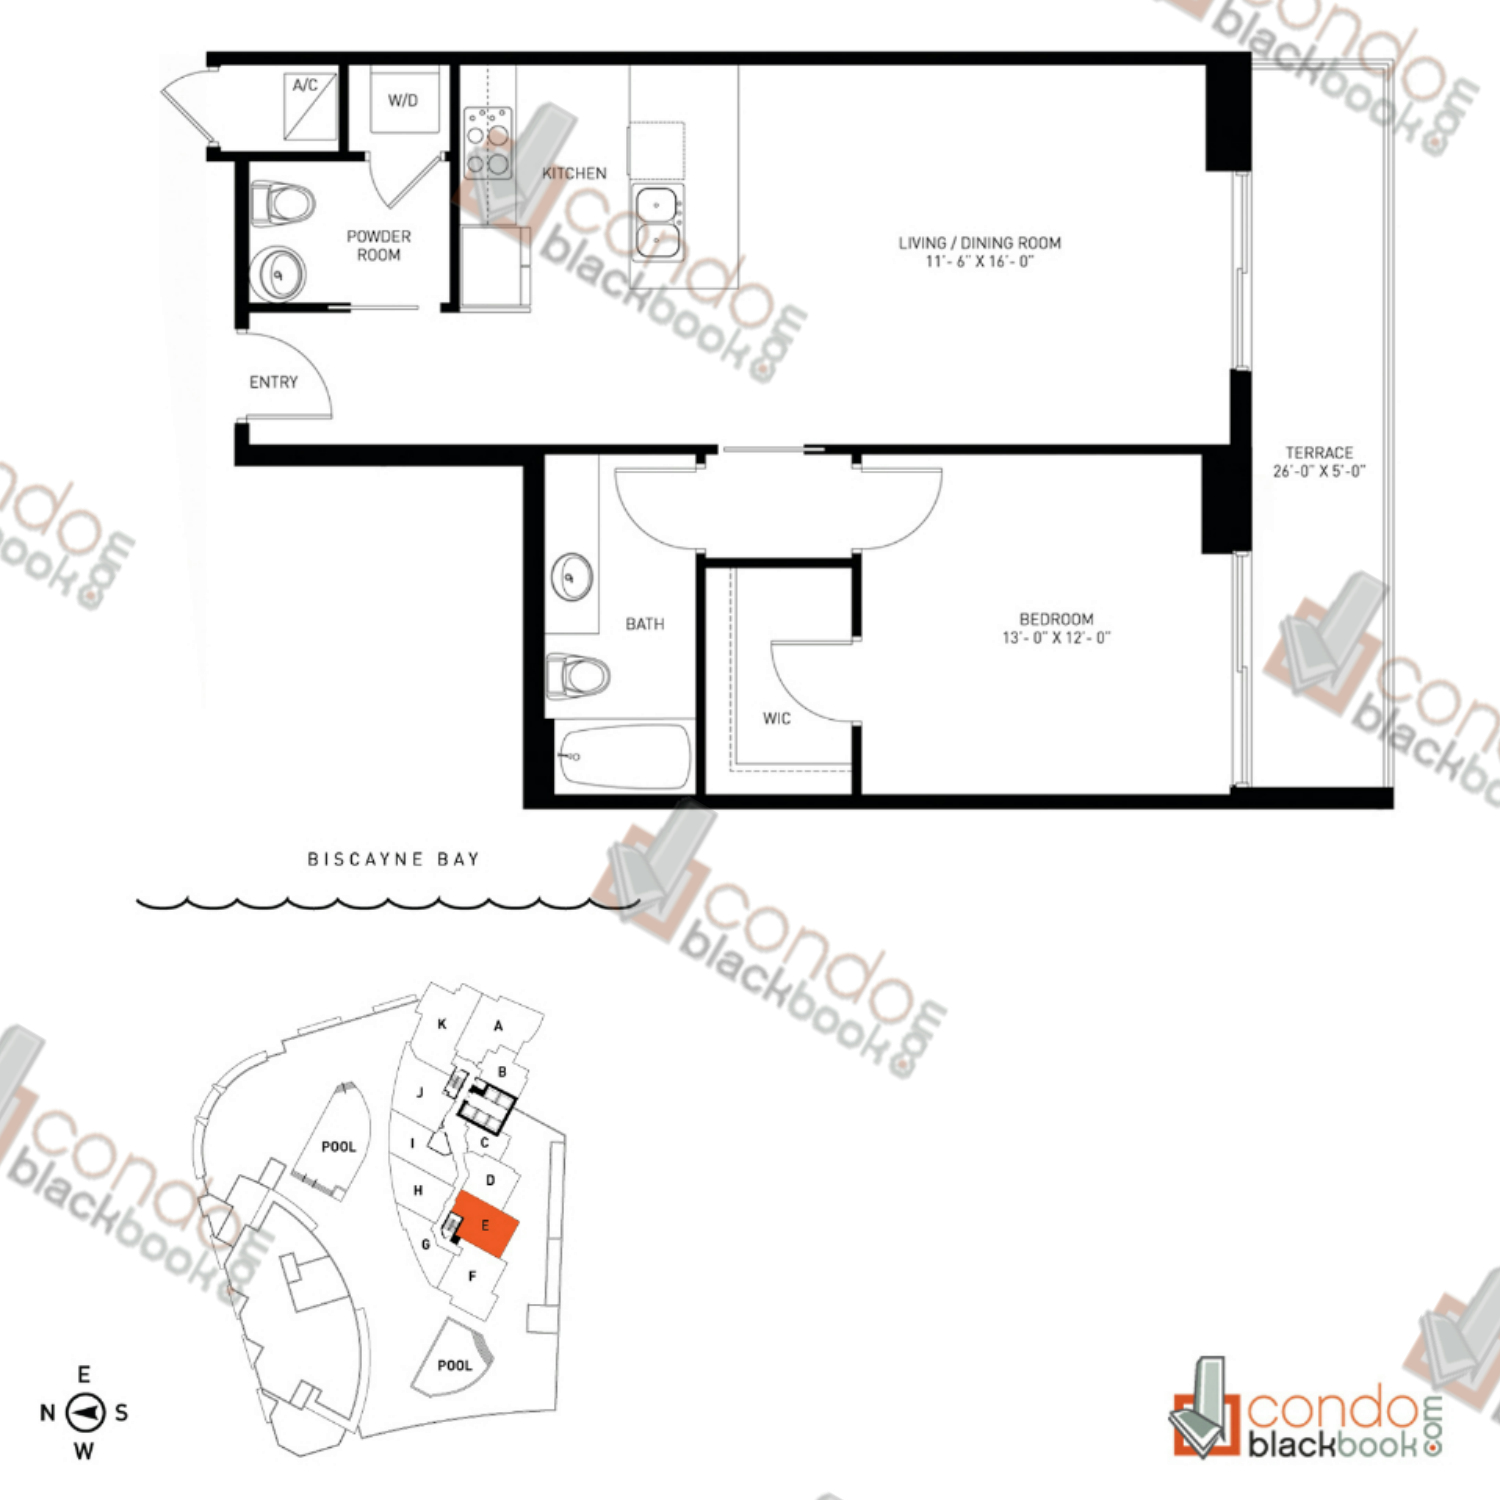 Floor plan for Quantum on the Bay Edgewater Miami, model Residence_E, line 09S, 1/1.5 bedrooms, 838 sq ft